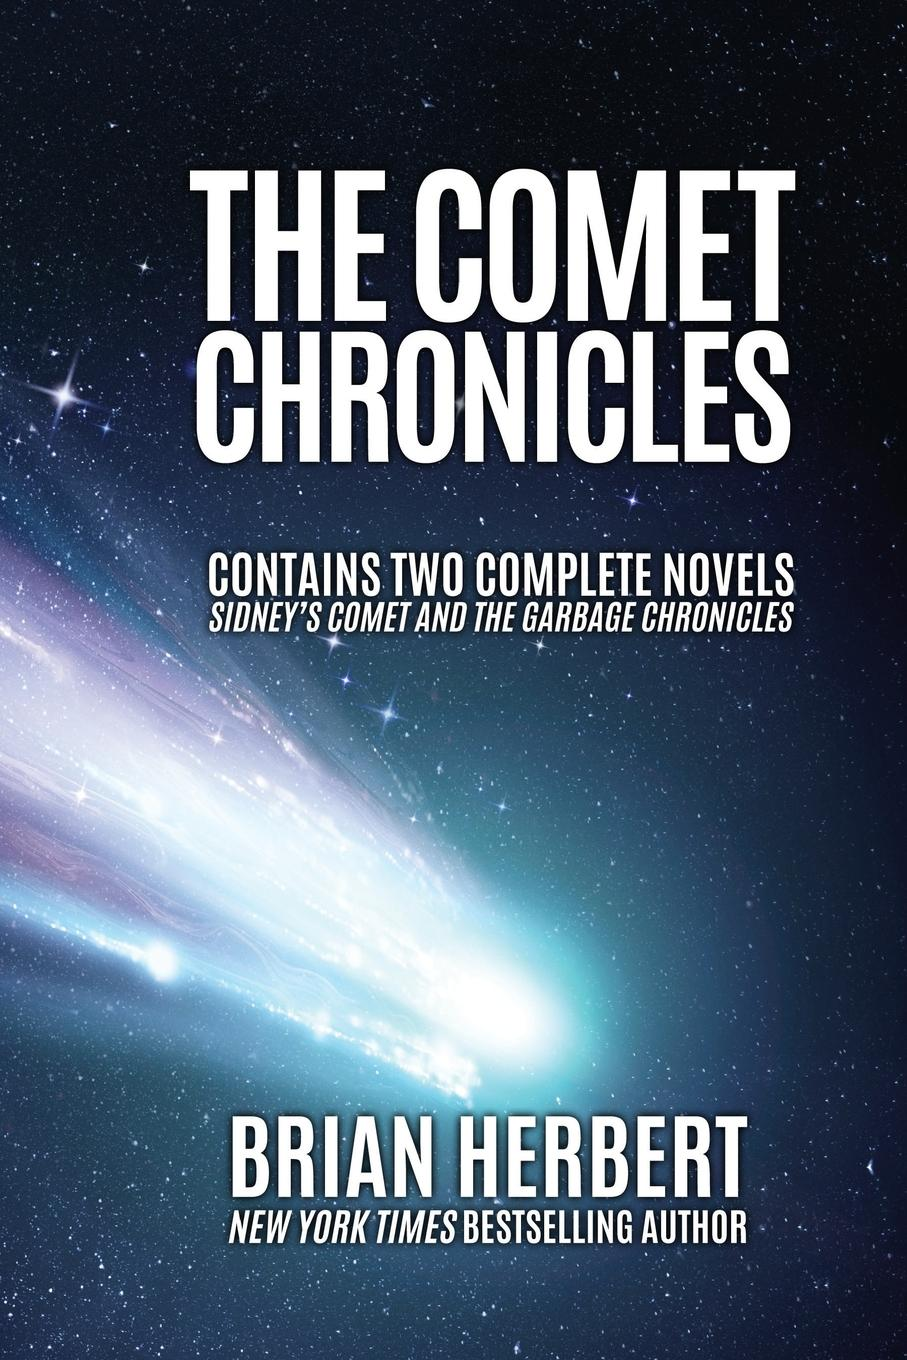 Brian Herbert The Comet Chronicles. Sidney.s Comet . The Garbage Chronicles brian degas specials based on the bbc tv drama series the complete novels in one volume